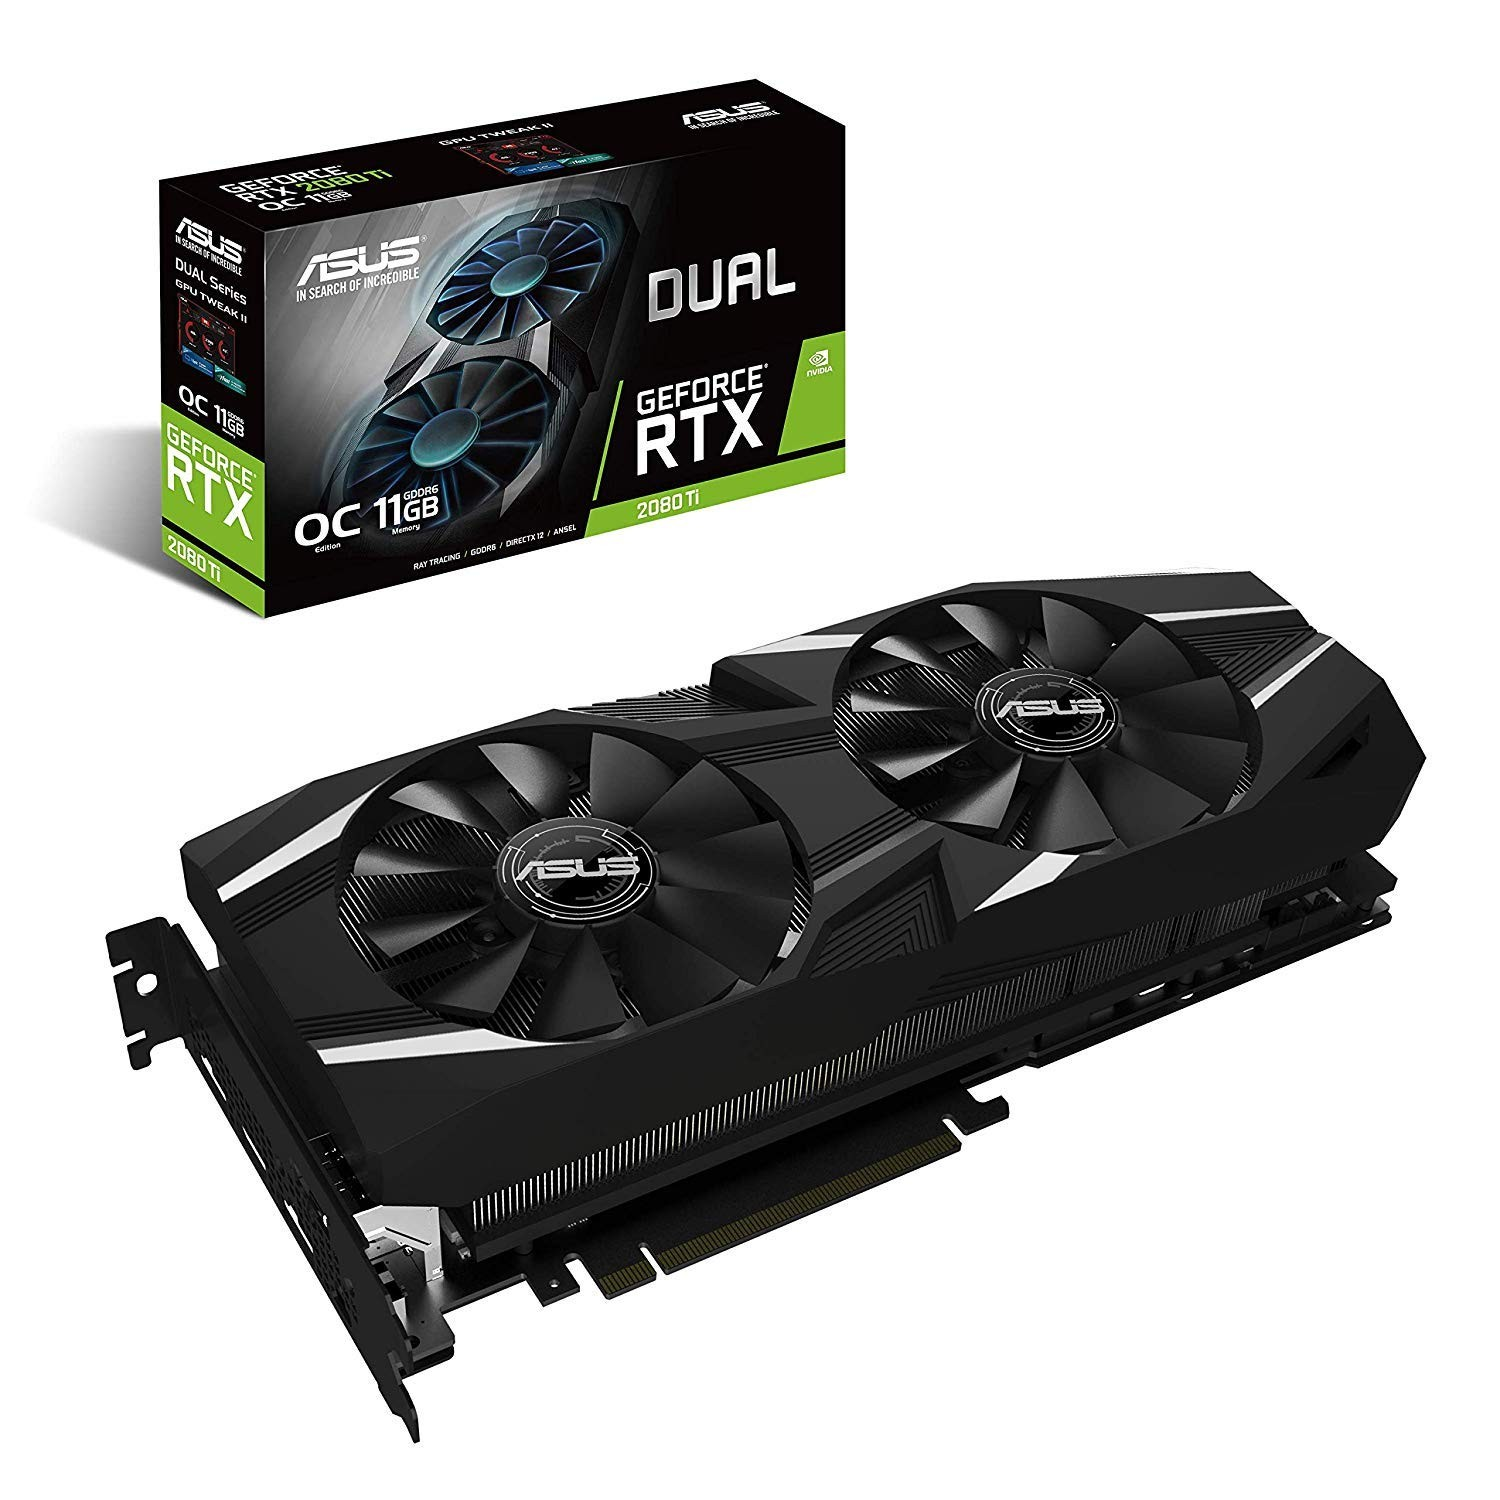 Image 1 of Asus Geforce Rtx 2080 Ti O11G Dual-Fan Oc Edition Gddr6 Hdmi Dp 1.4 Usb Type-C Graphics Card DUAL-RTX2080TI-O11G